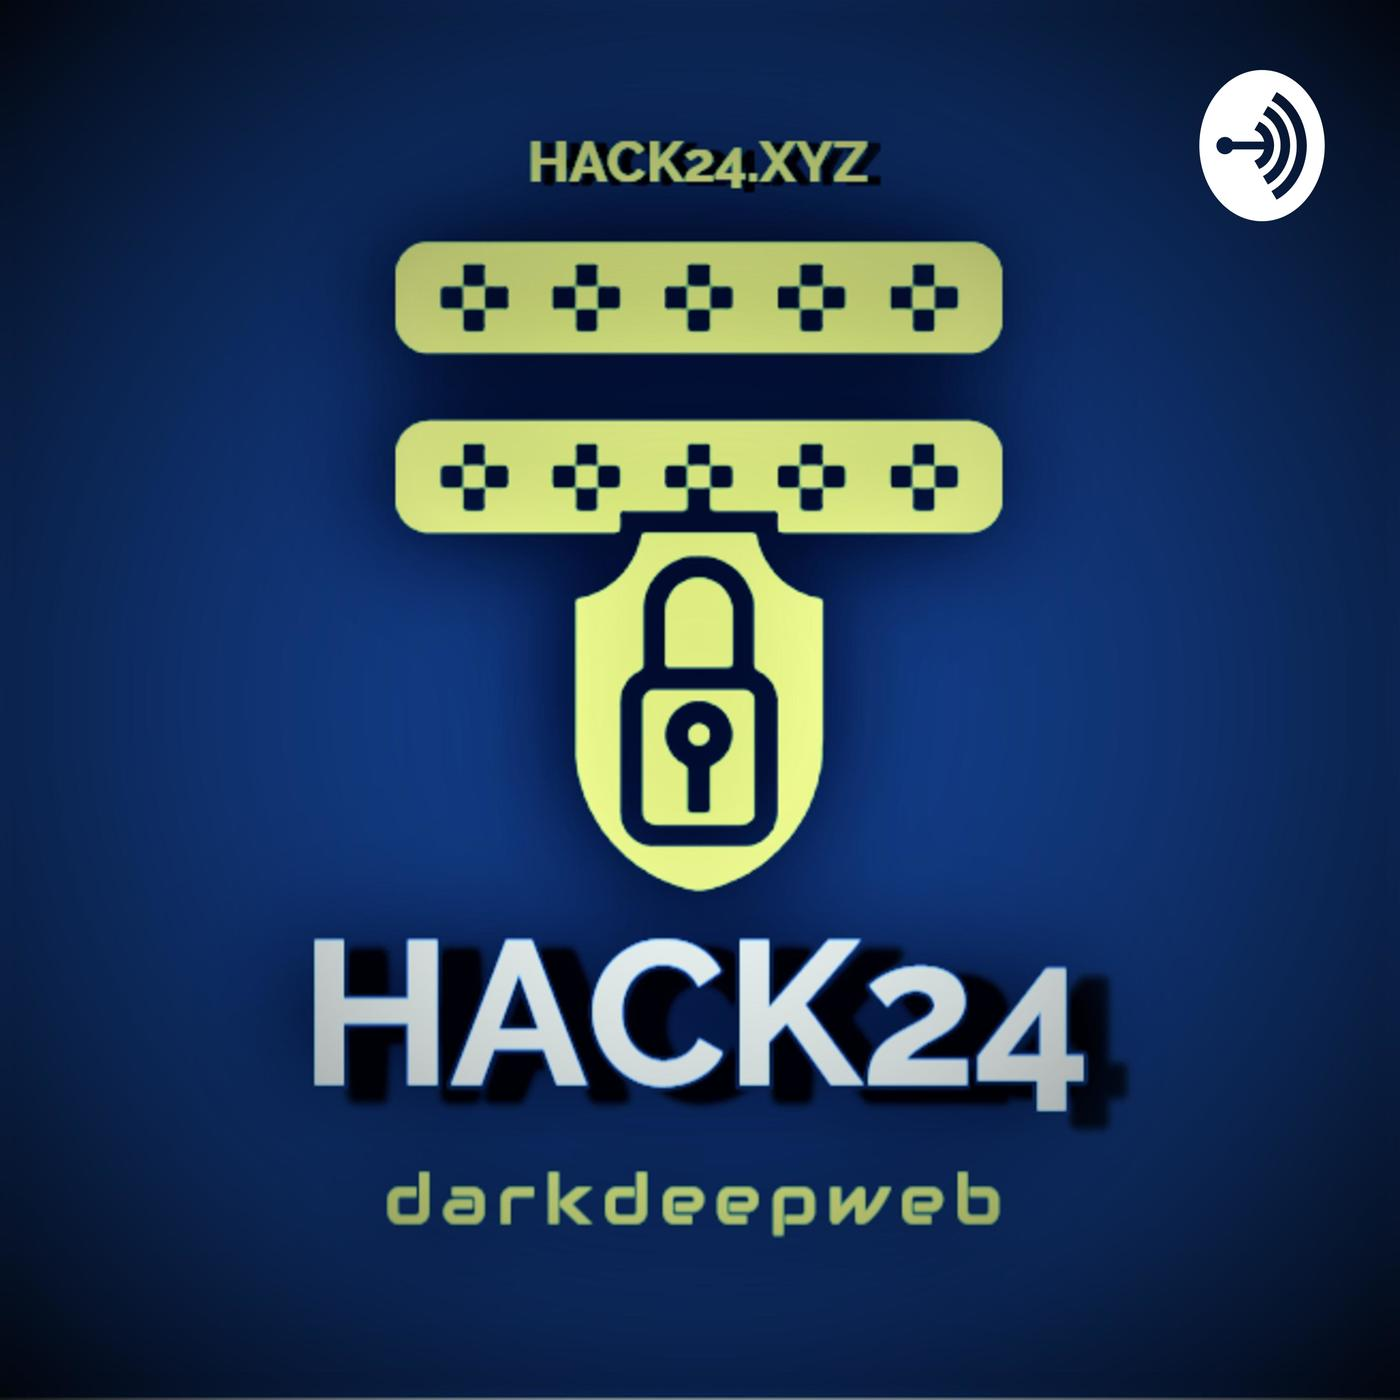 Hack24 - S01E14 - ENGLISH - I don't believe in anything  It